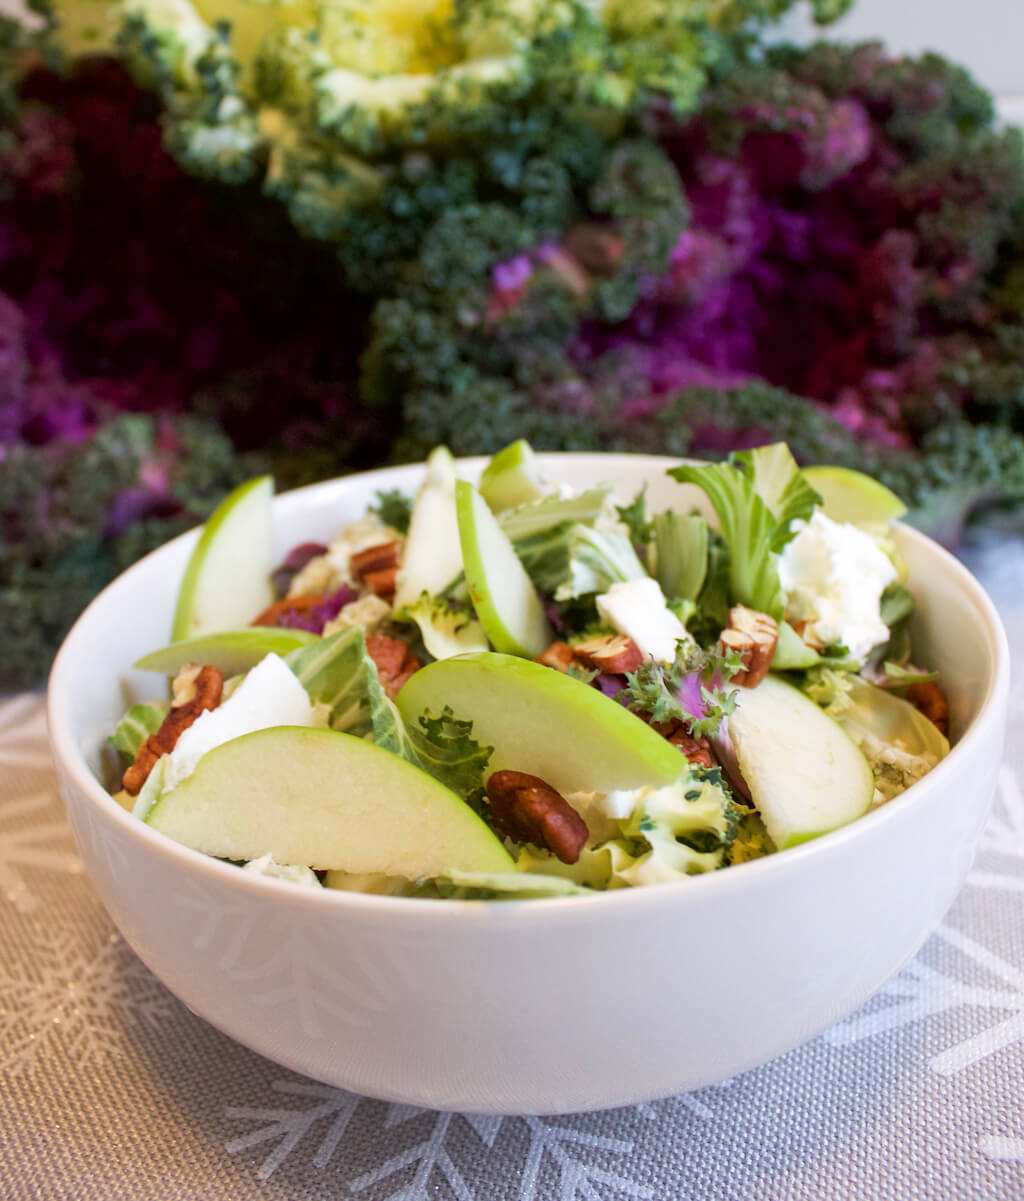 Colorful Salads: Salad Savoy Signature Salad with Apples